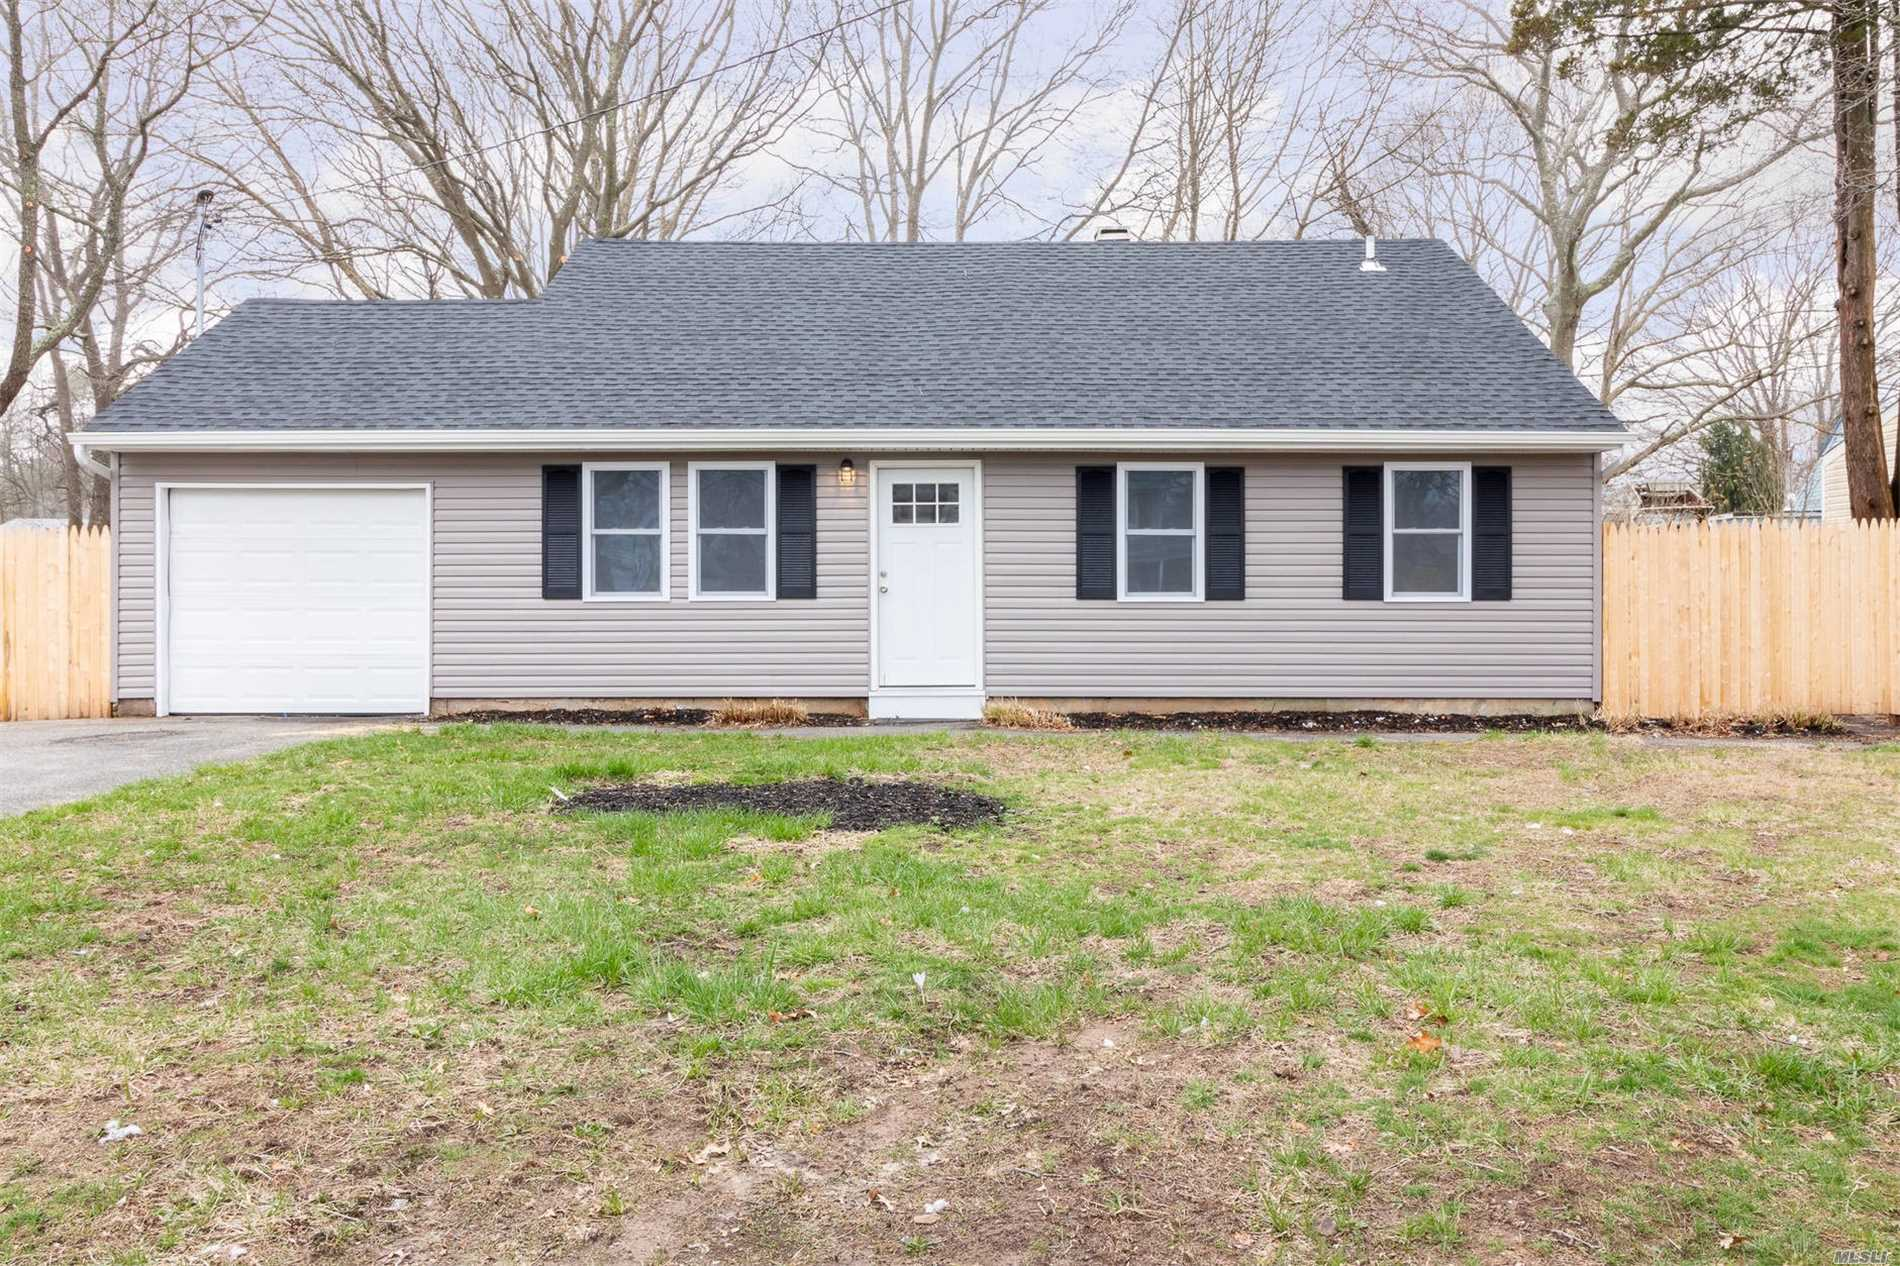 Diamond, Totally Renovated 4 Bedroom Split, With 2 Baths. Move-In Ready.